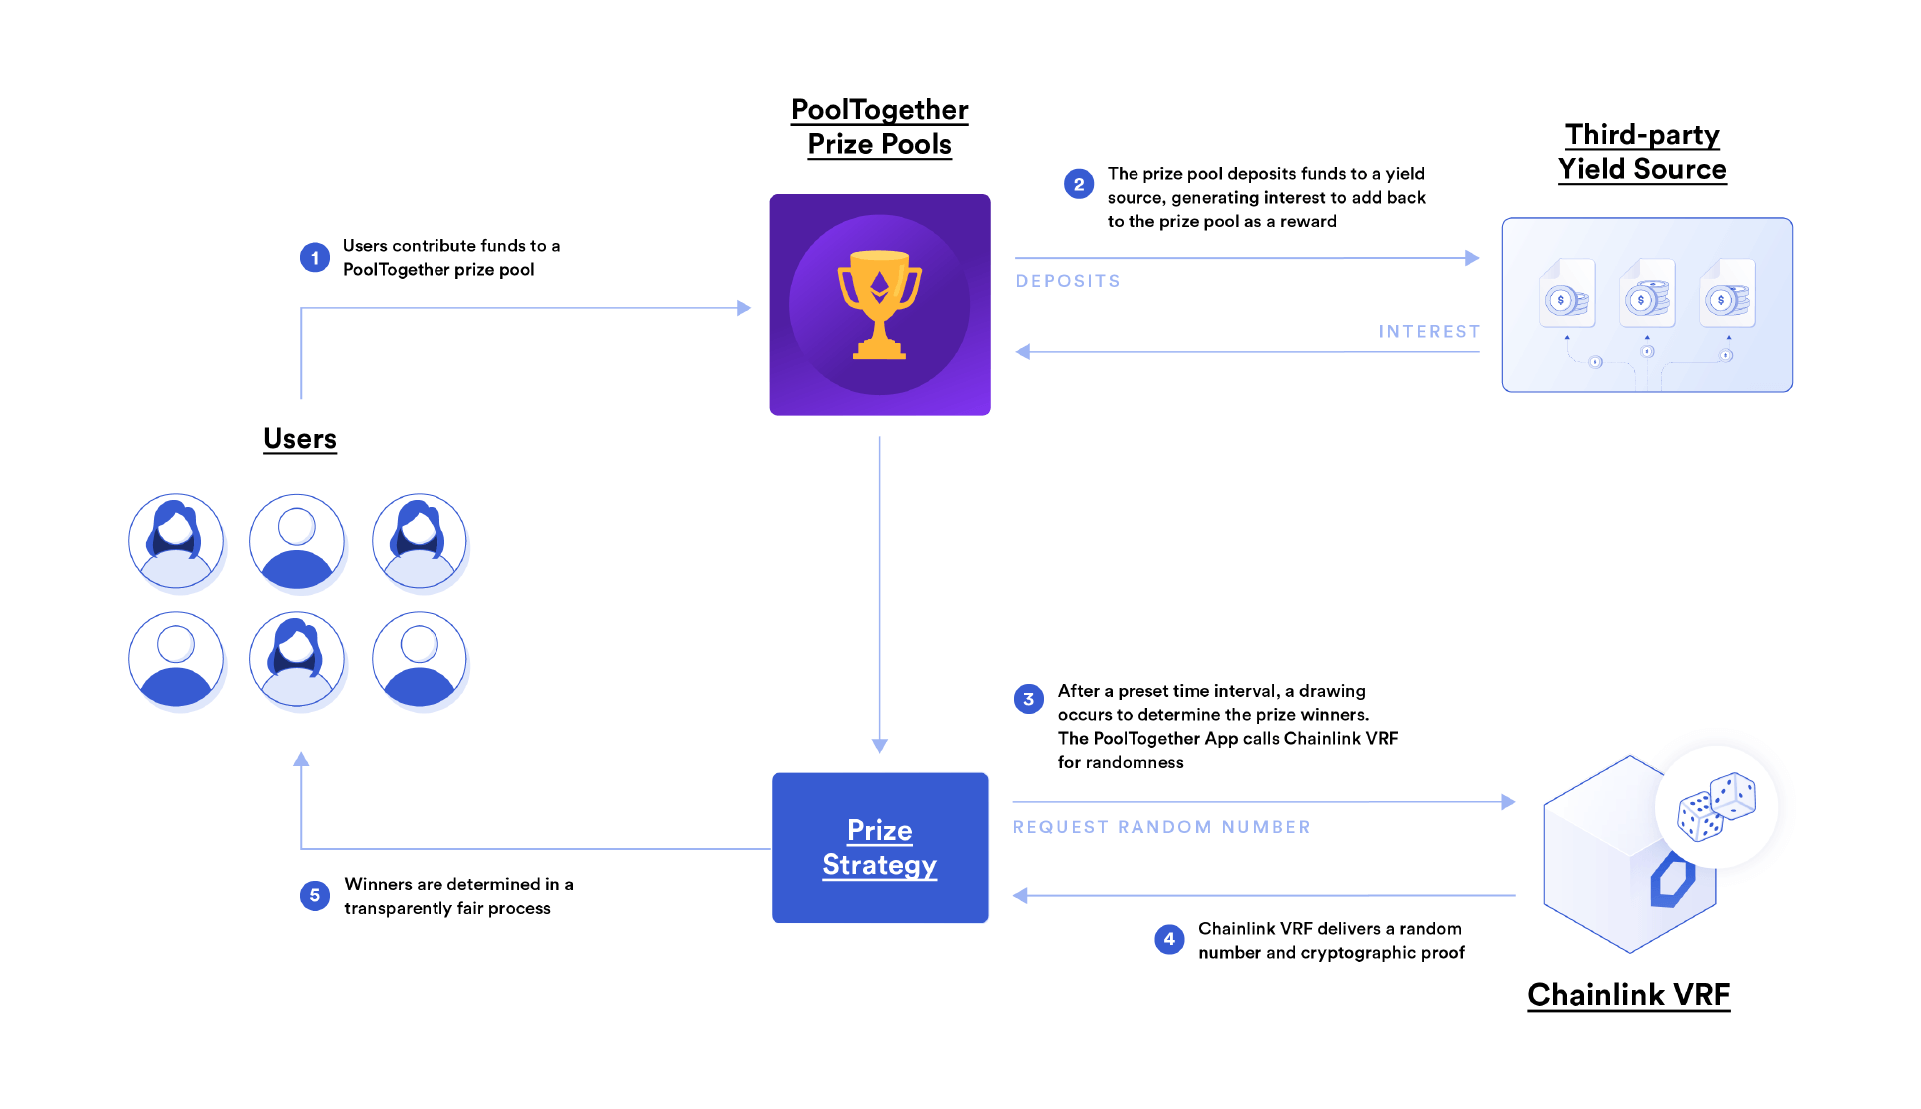 Chainlink VRF powers PoolTogether with verifiable randomness.